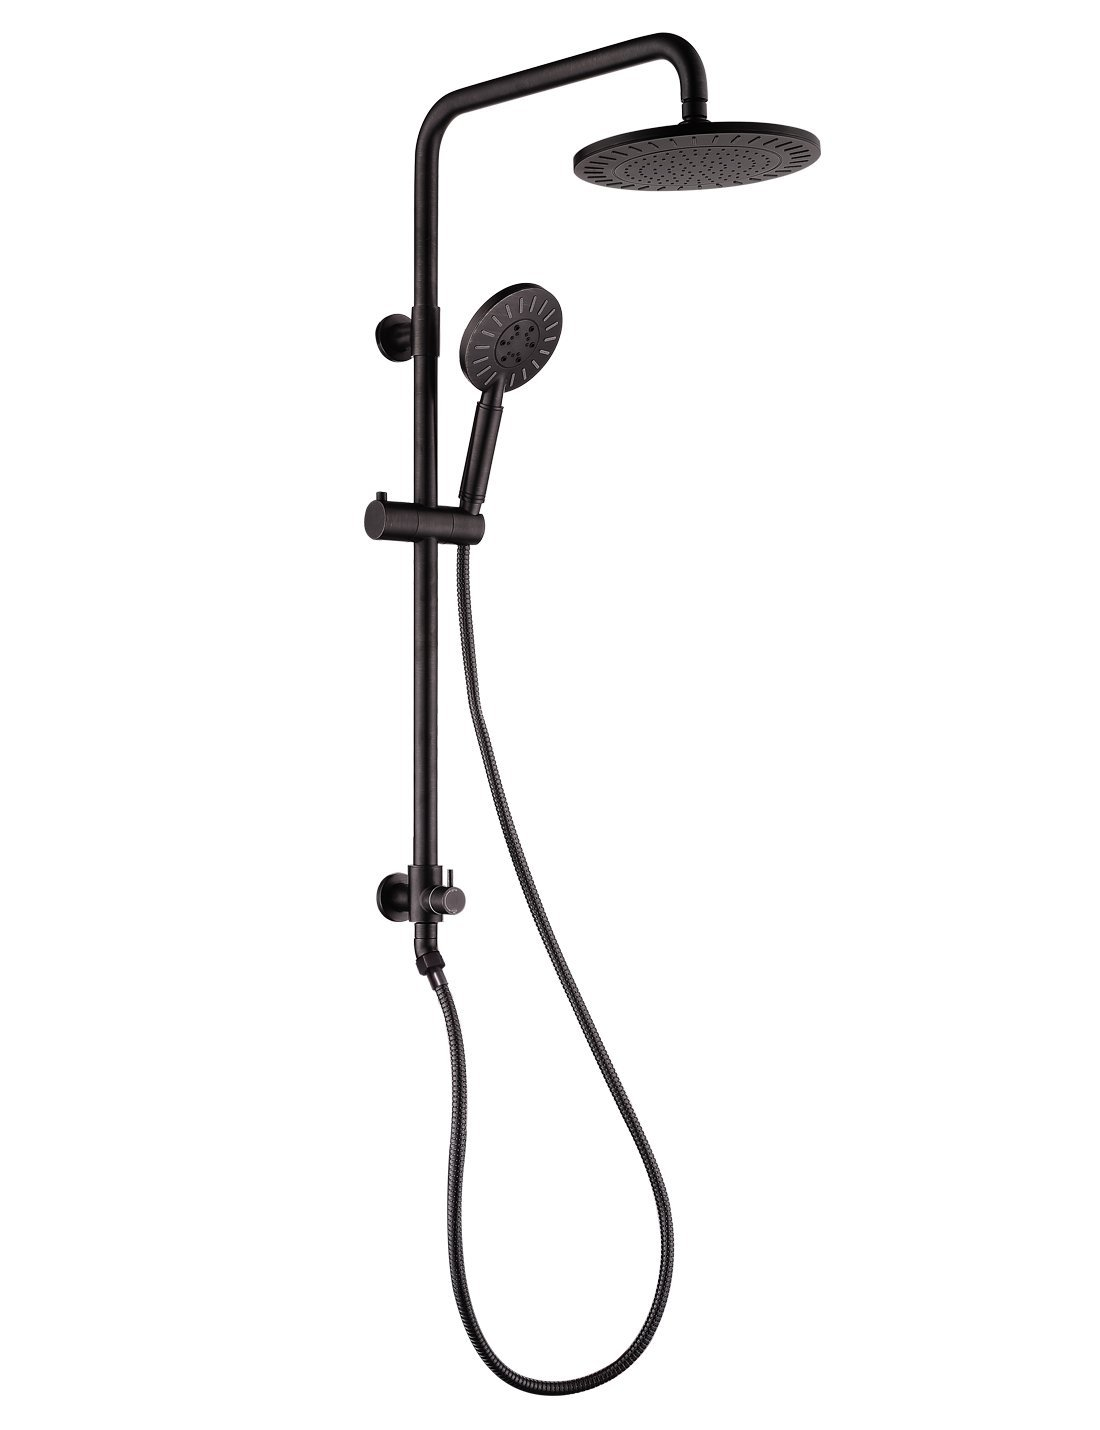 Rain Shower System with Rain Shower Head and 3 Spray Setting Handheld Shower Combo Set 5 ft stainless steel hose Adjustable Slide Bar Shower Elbow Included Oil Rubbed Bronze